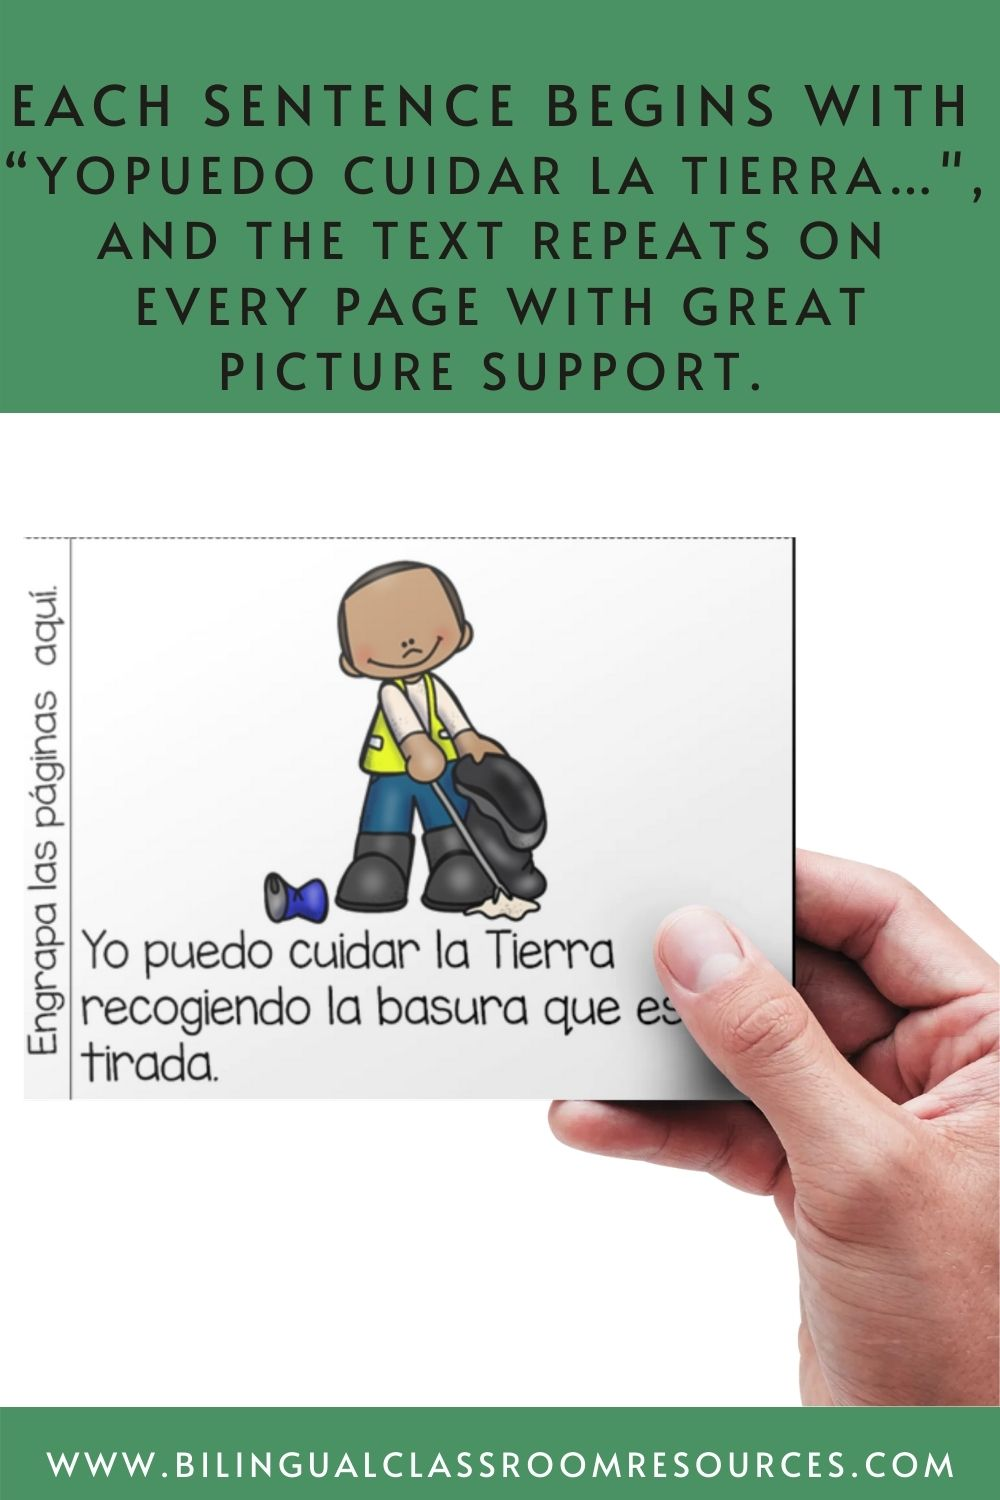 Yo puedo cuidar la Tierra/ I can take care of the Earth reader in Spanish: introduces your students to different ways they can care for the Earth